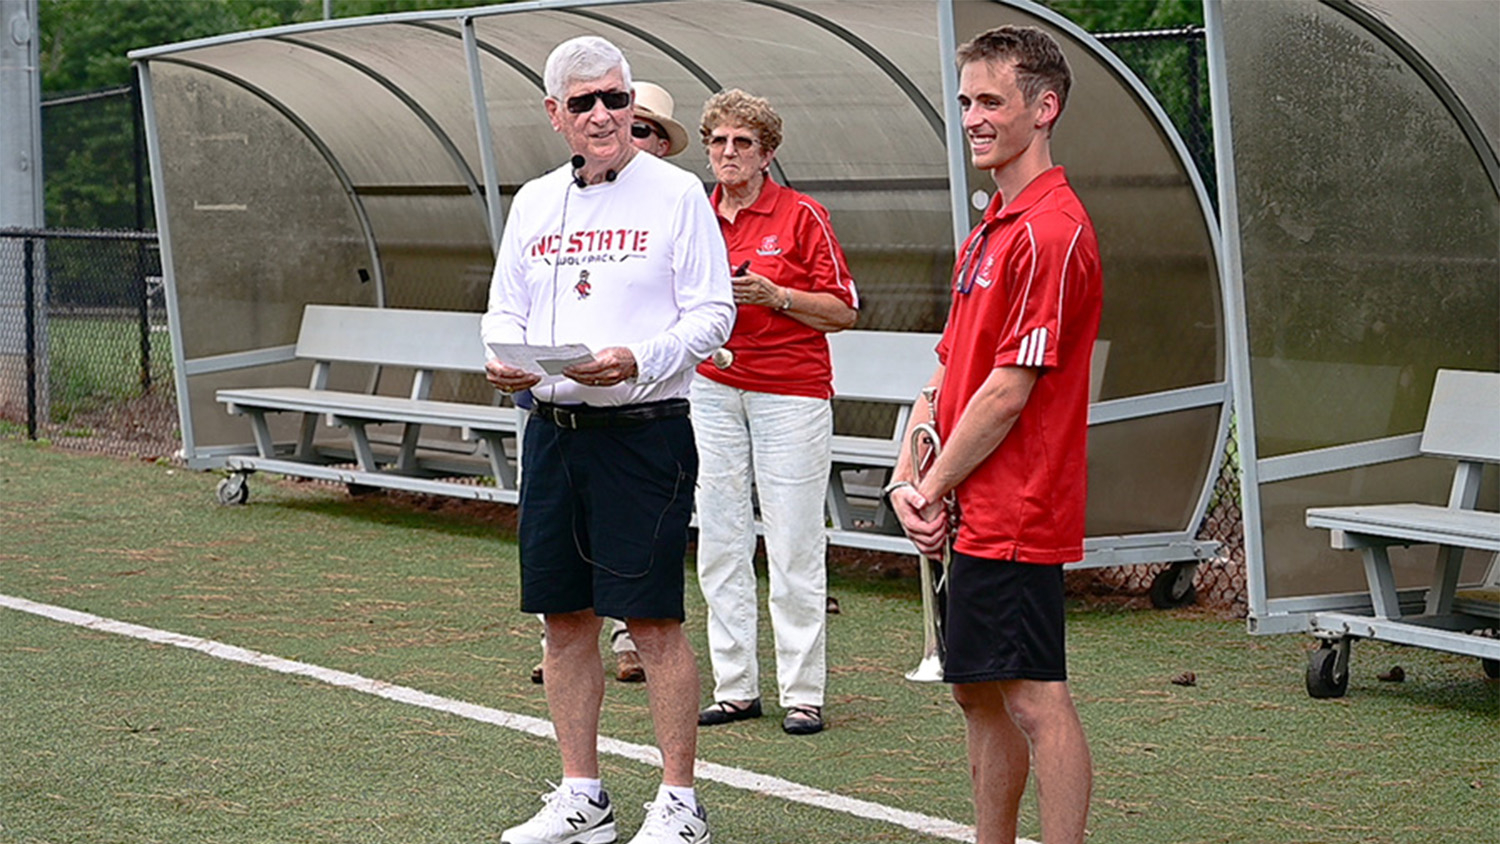 Gage Fringer, wearing a red shirt and black shorts and holding his trumpet, standing next to a man (Bob Masini) in a white shirt and black shorts